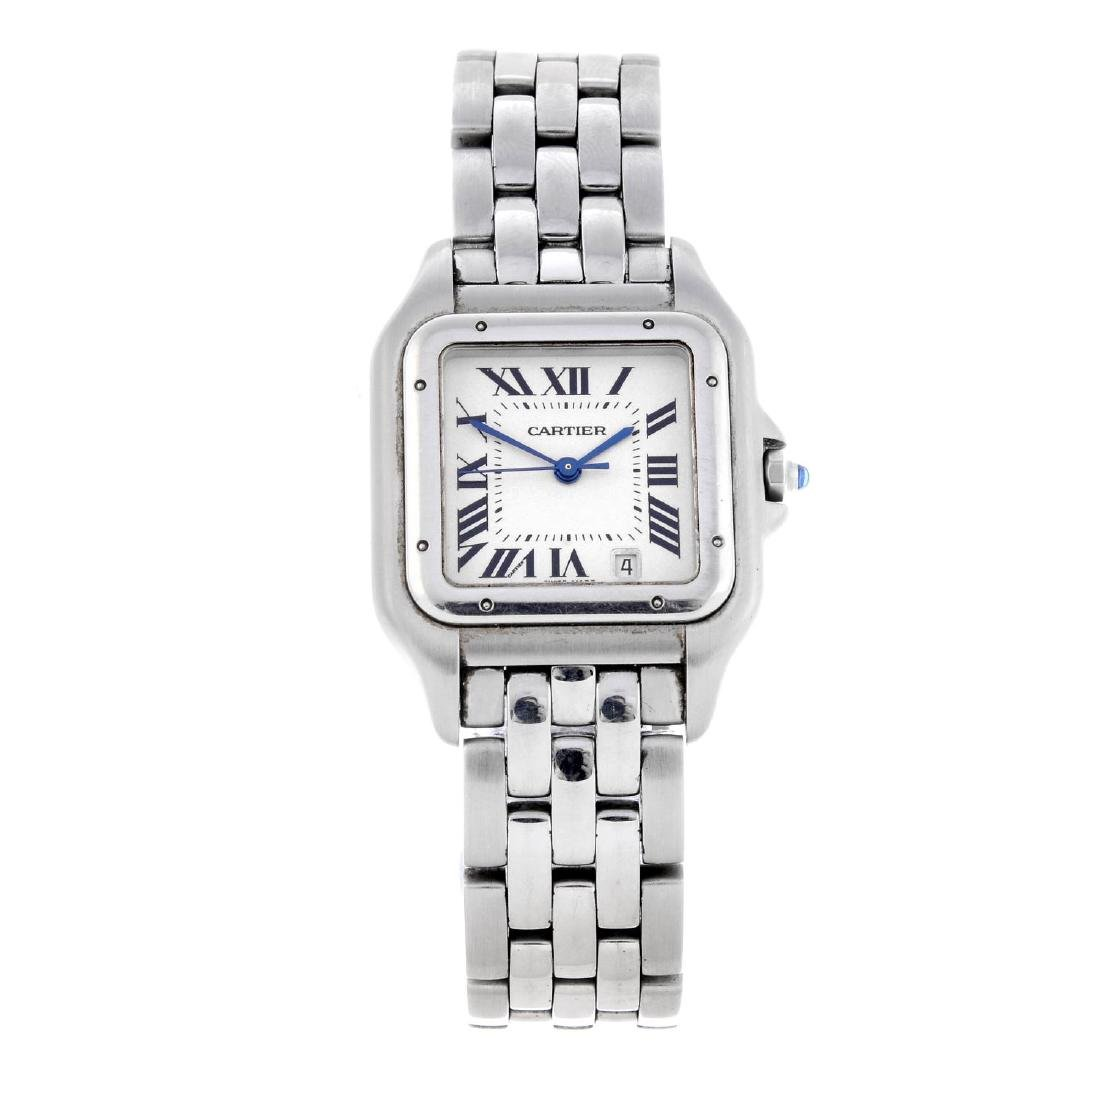 CARTIER - a Panthere bracelet watch. Stainless steel